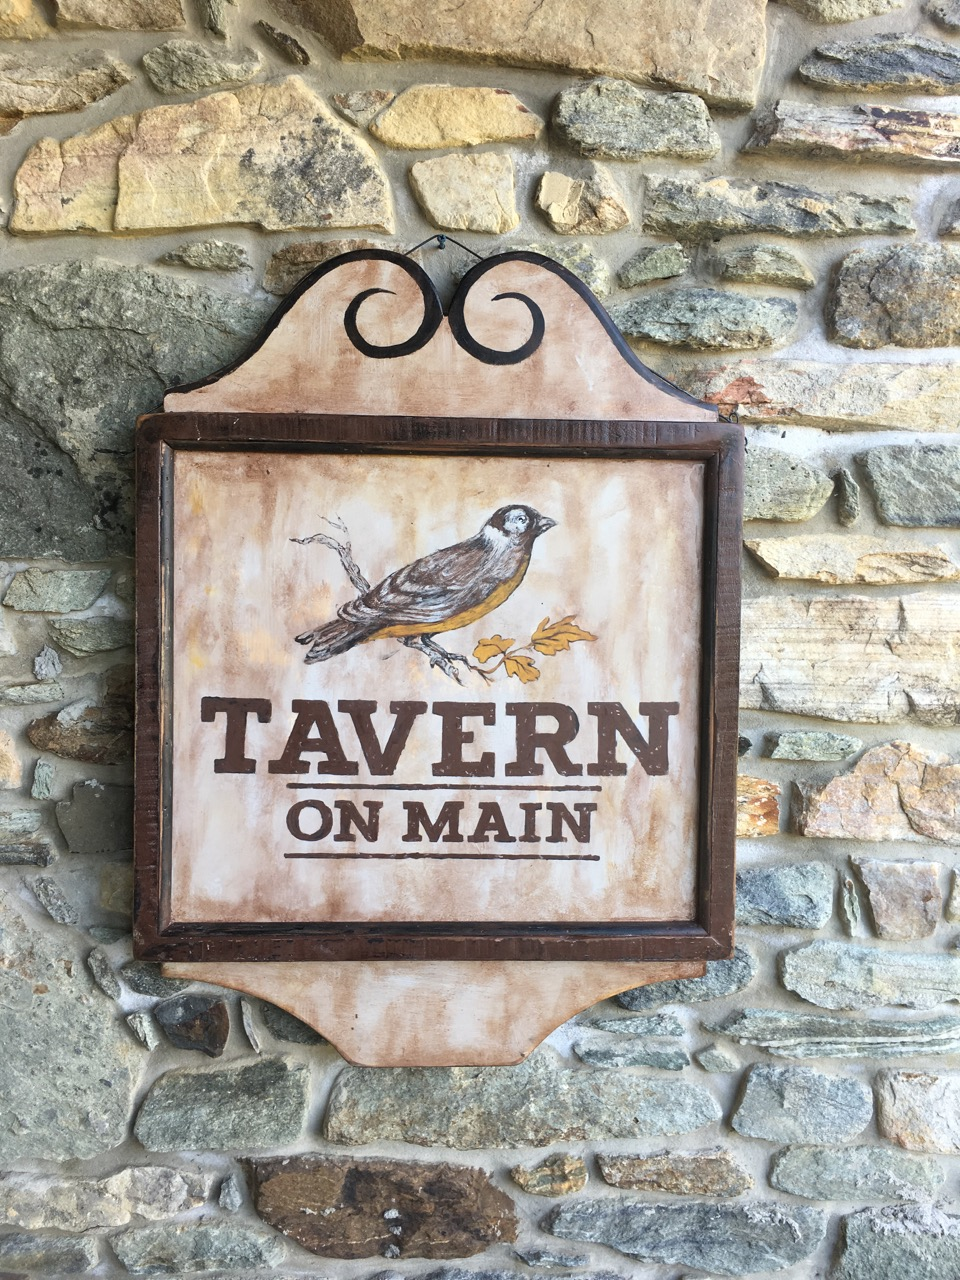 Tavern on Main